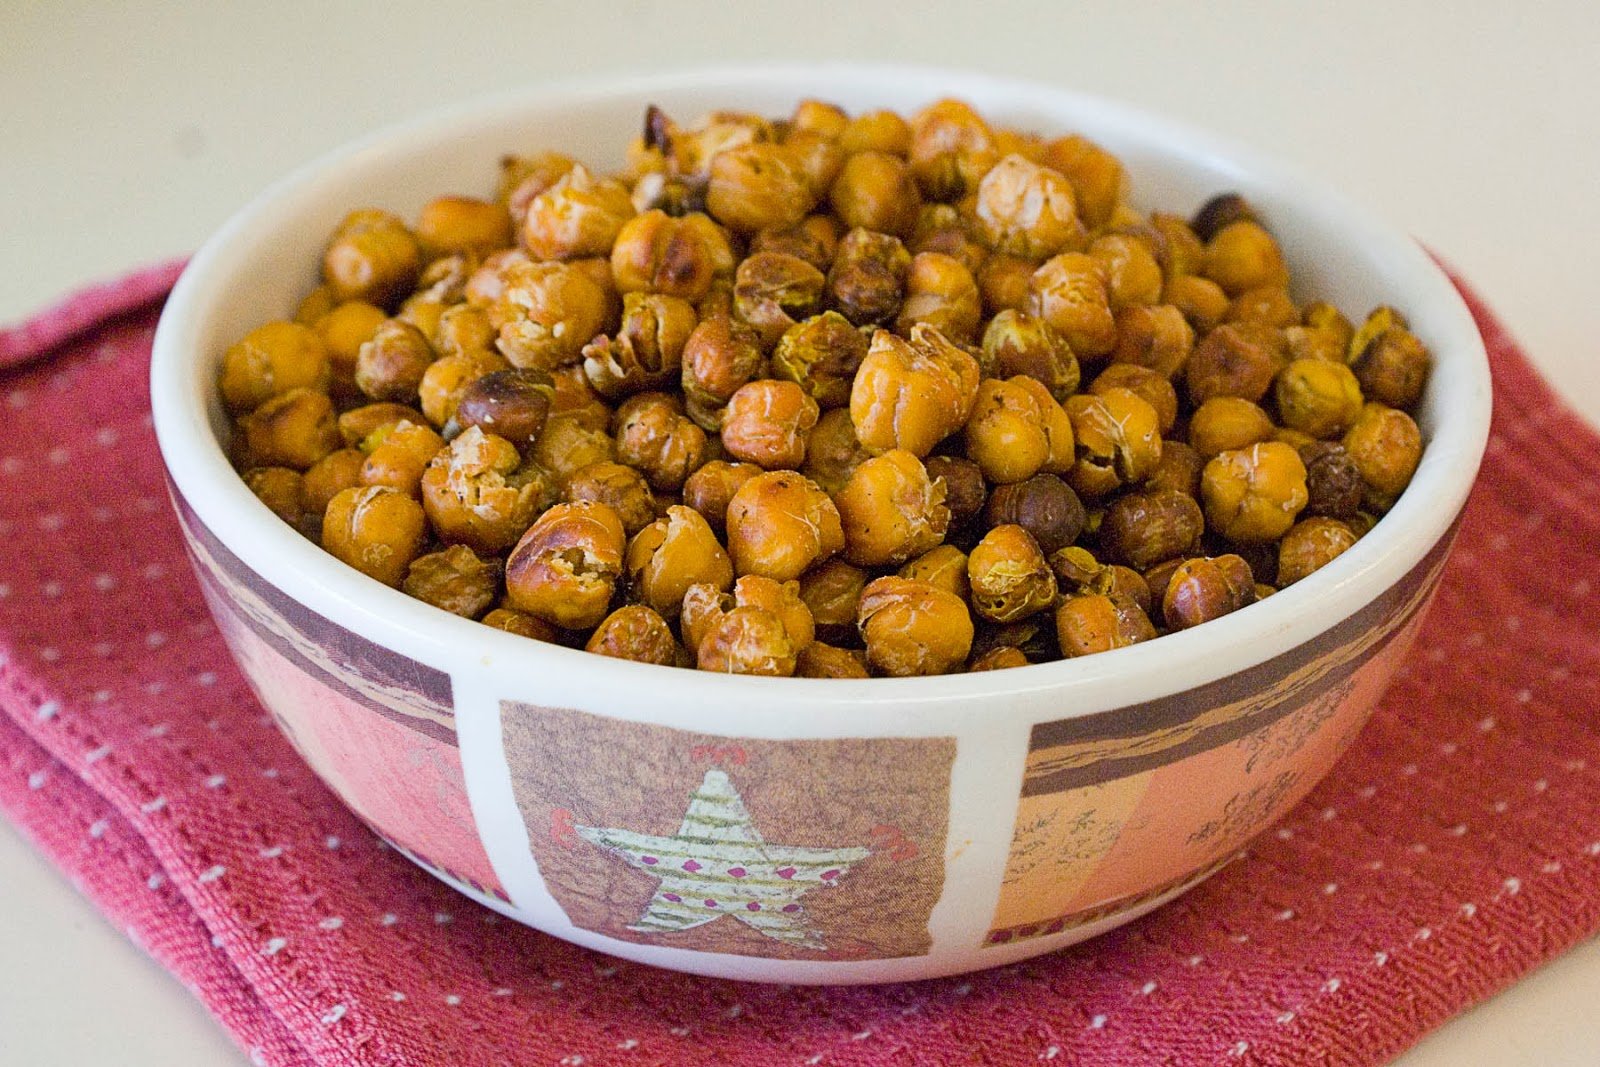 Dill Pickle Roasted Chickpeas